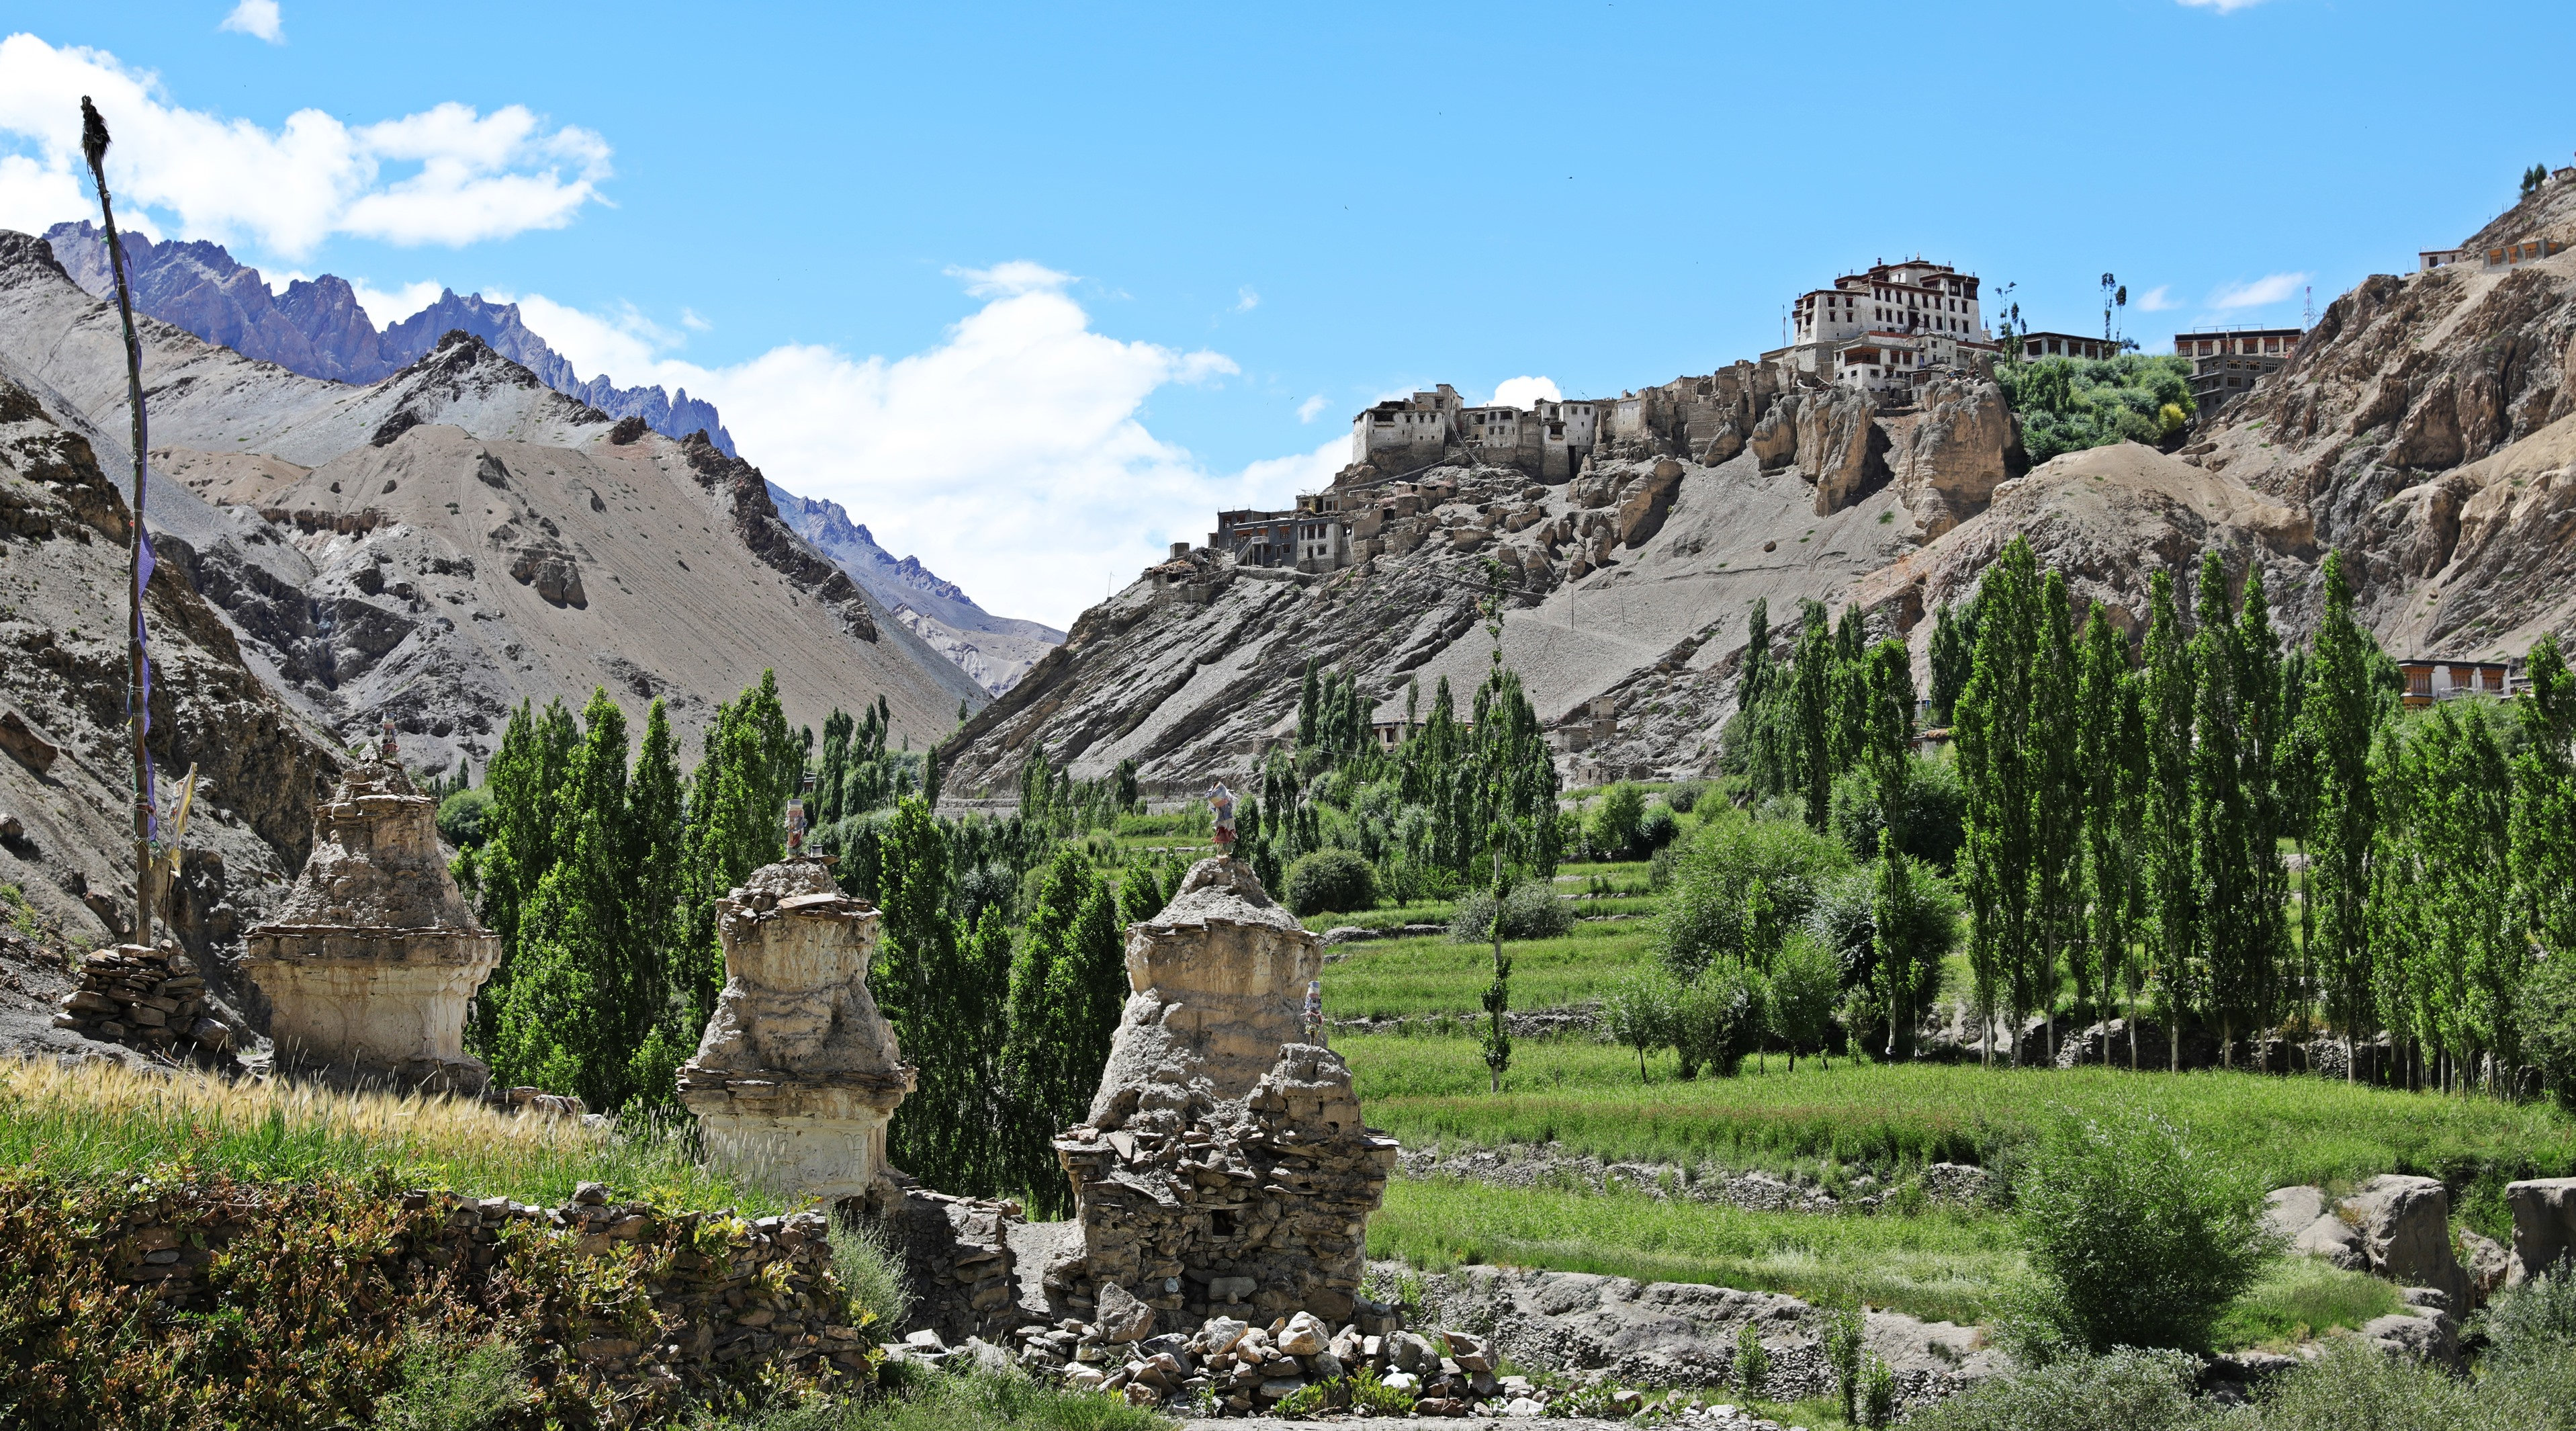 Lamayuru Gompa on a hill above the valley